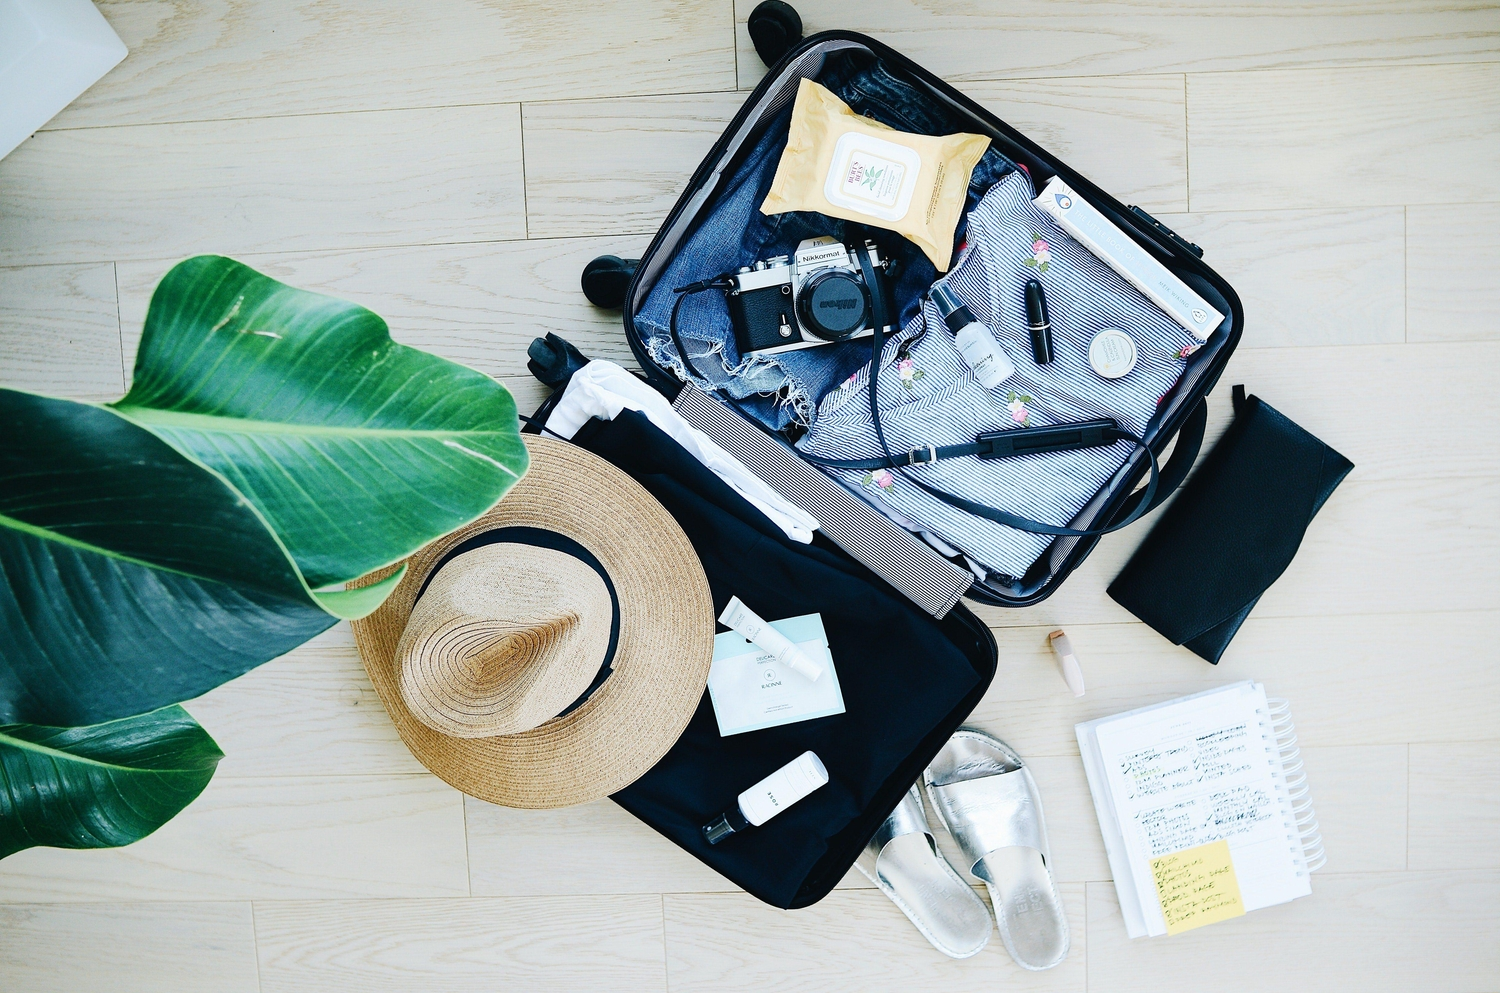 Open luggage on floor with hat and camera